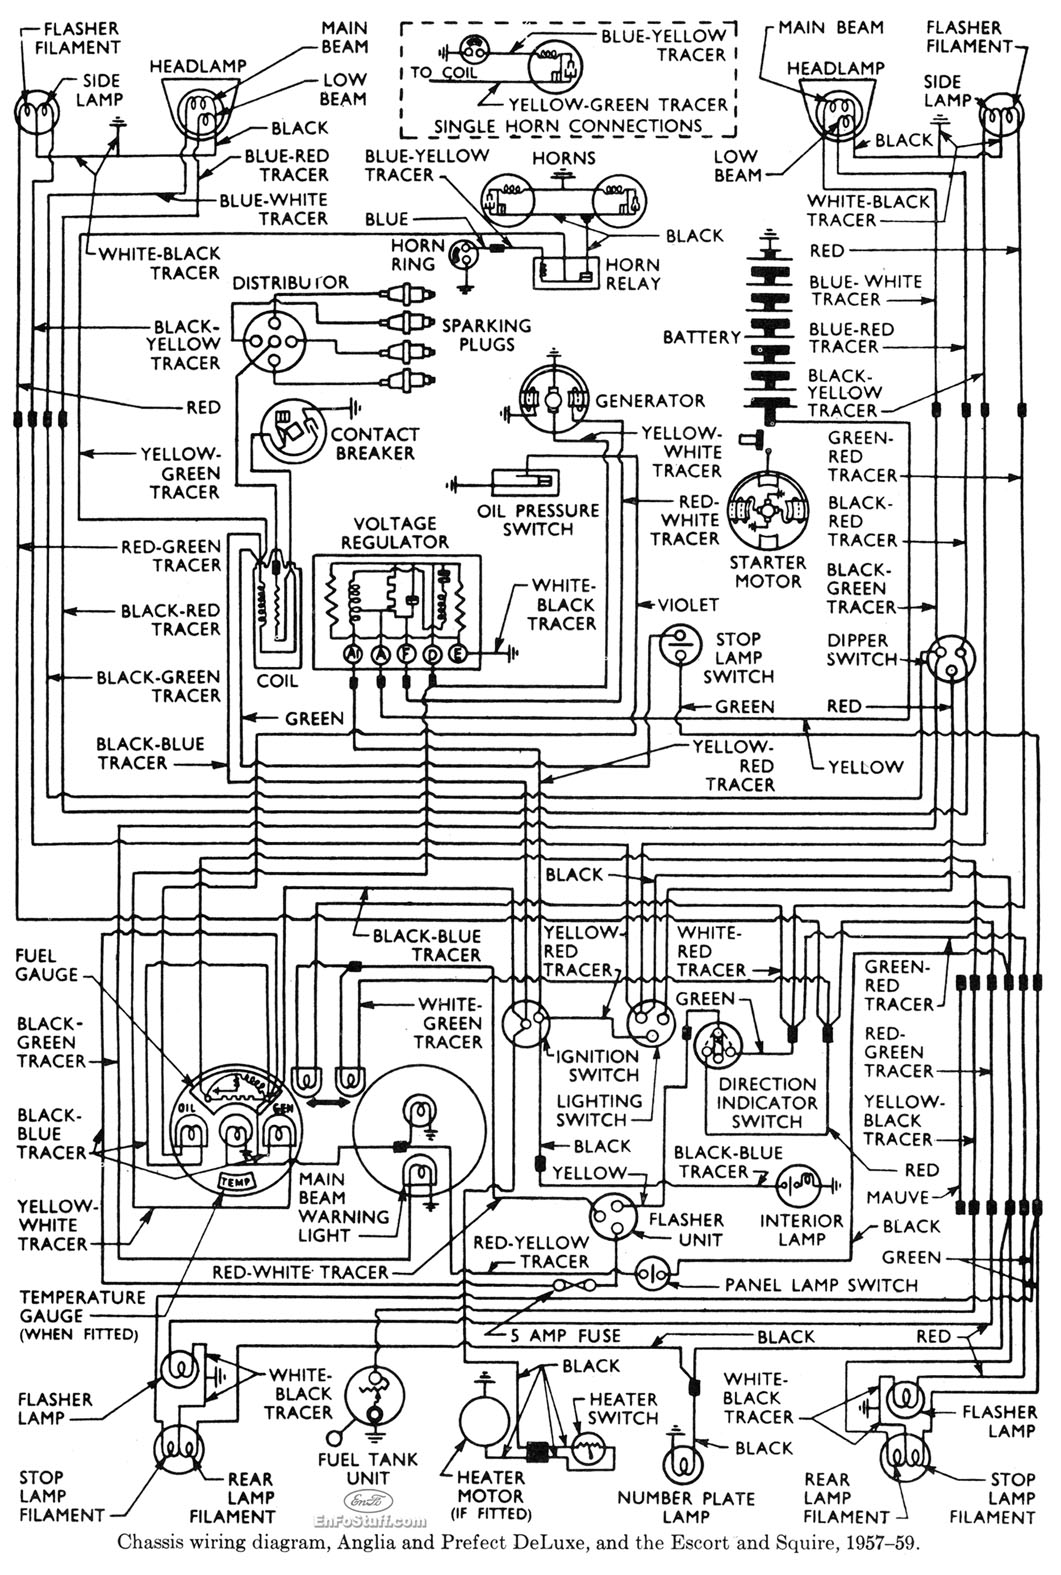 1955 ford fairlane wiring diagram prestige induction cooker circuit t bird 55 thunderbird